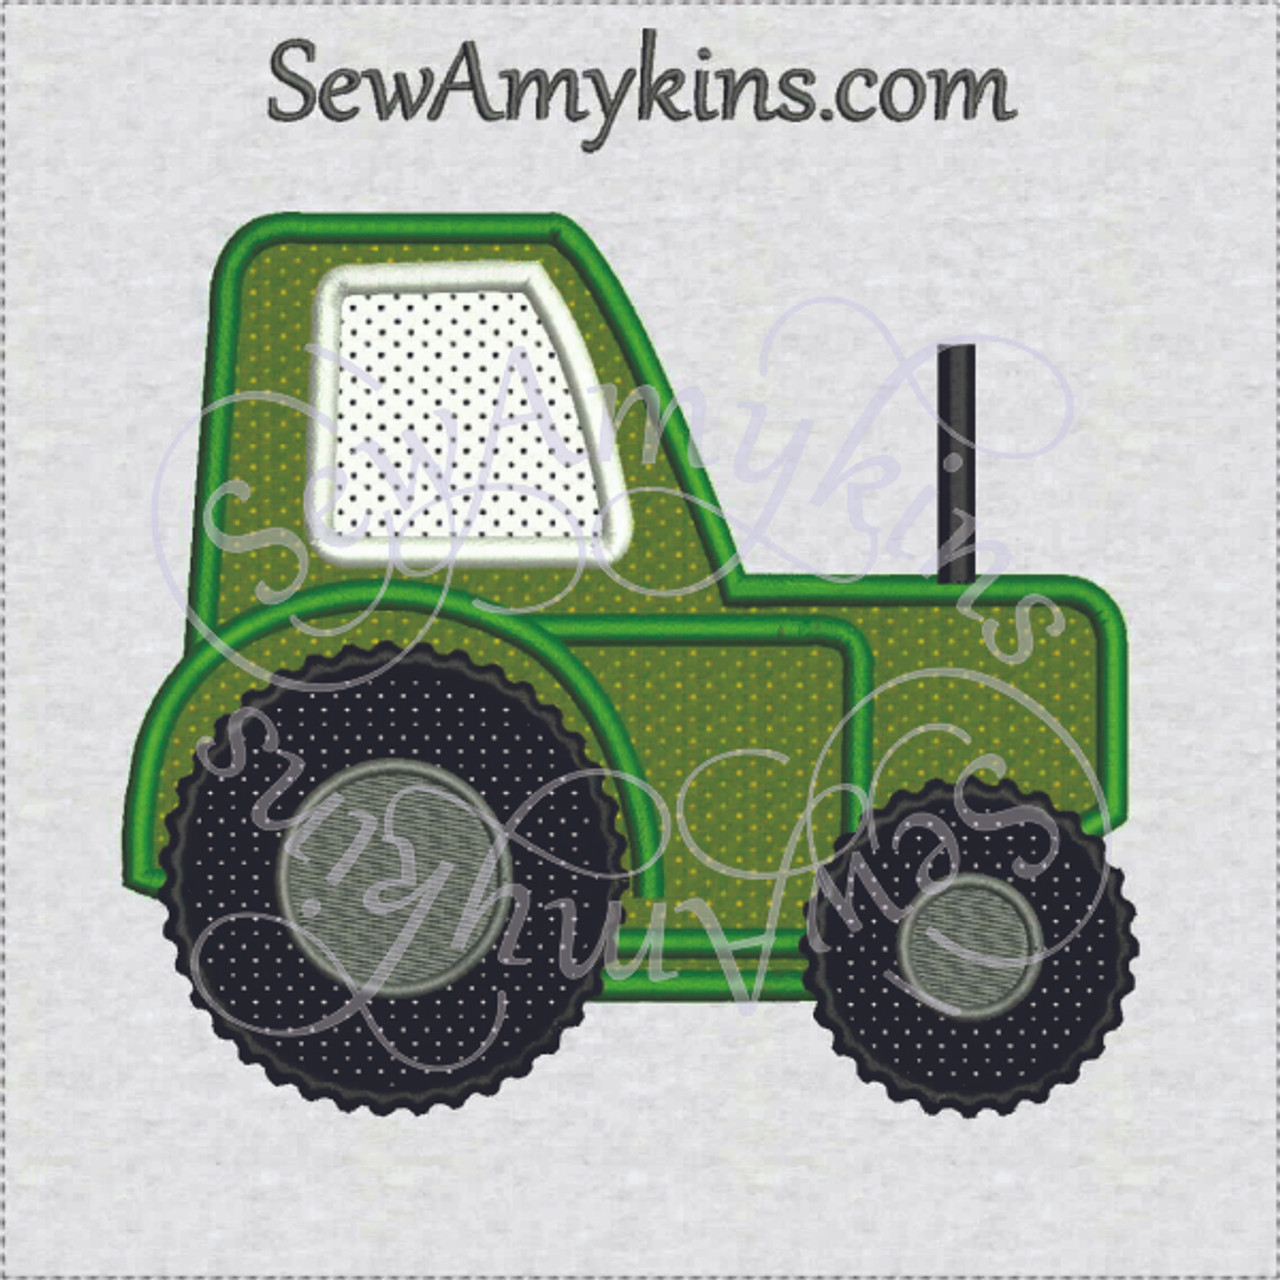 Embroidery Of Tractors : Farm tractor applique embroidery design sizes sewamykins